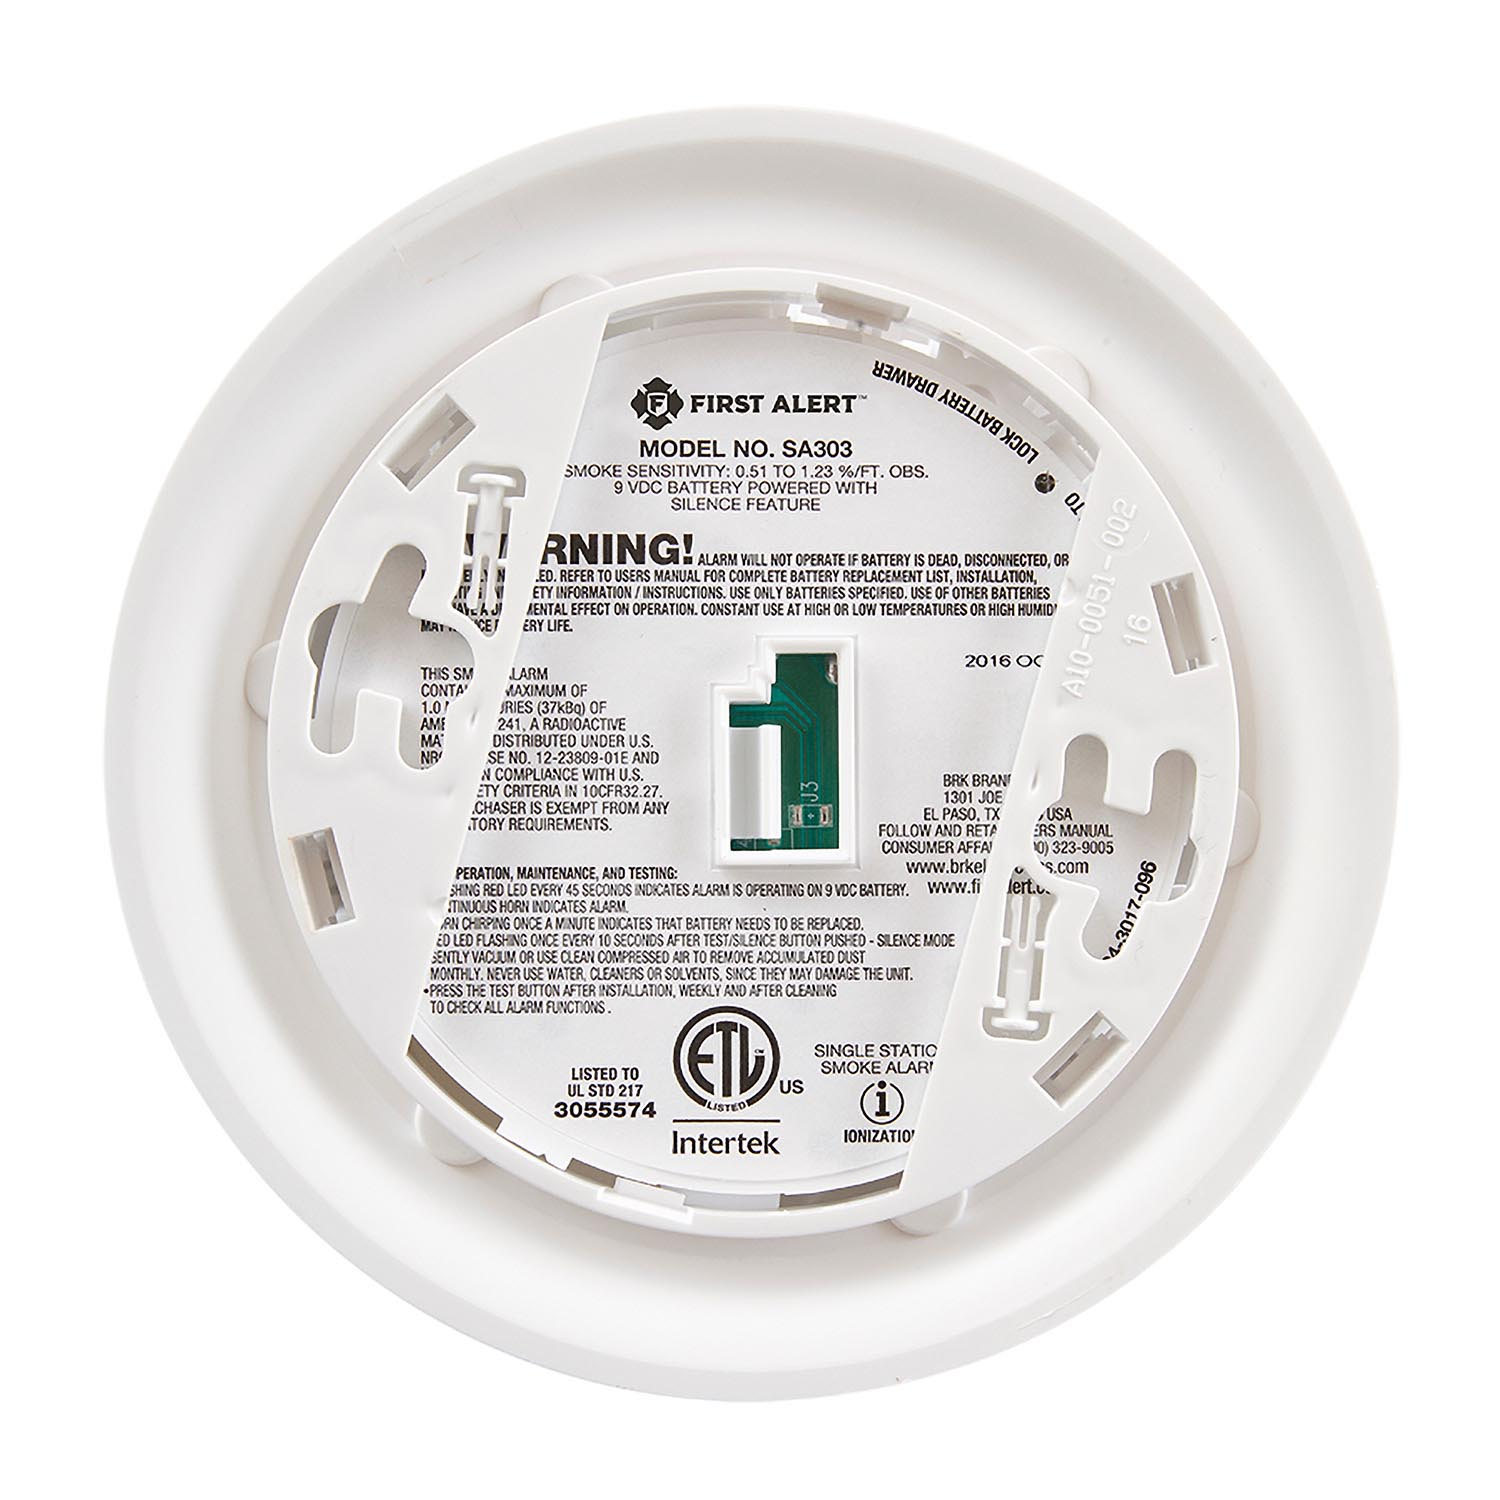 First Alert Basic Battery Operated Smoke Alarm - SA303CN3 (1039796)